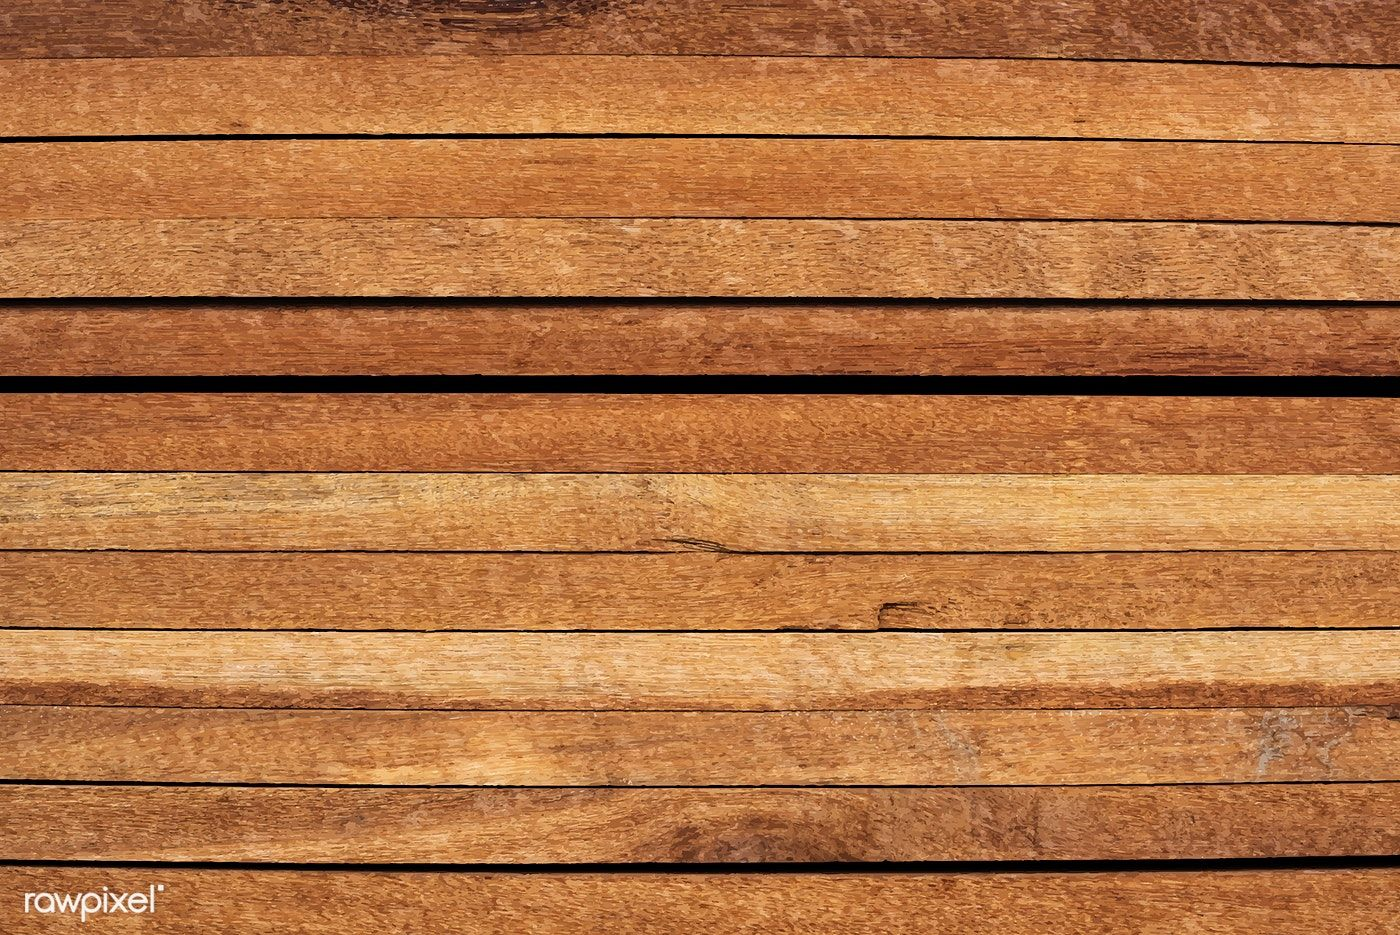 Stacked Wooden Planks Textured Background Design Free Image By Rawpixel Com In 2020 Textured Background Wooden Planks Free Wood Texture